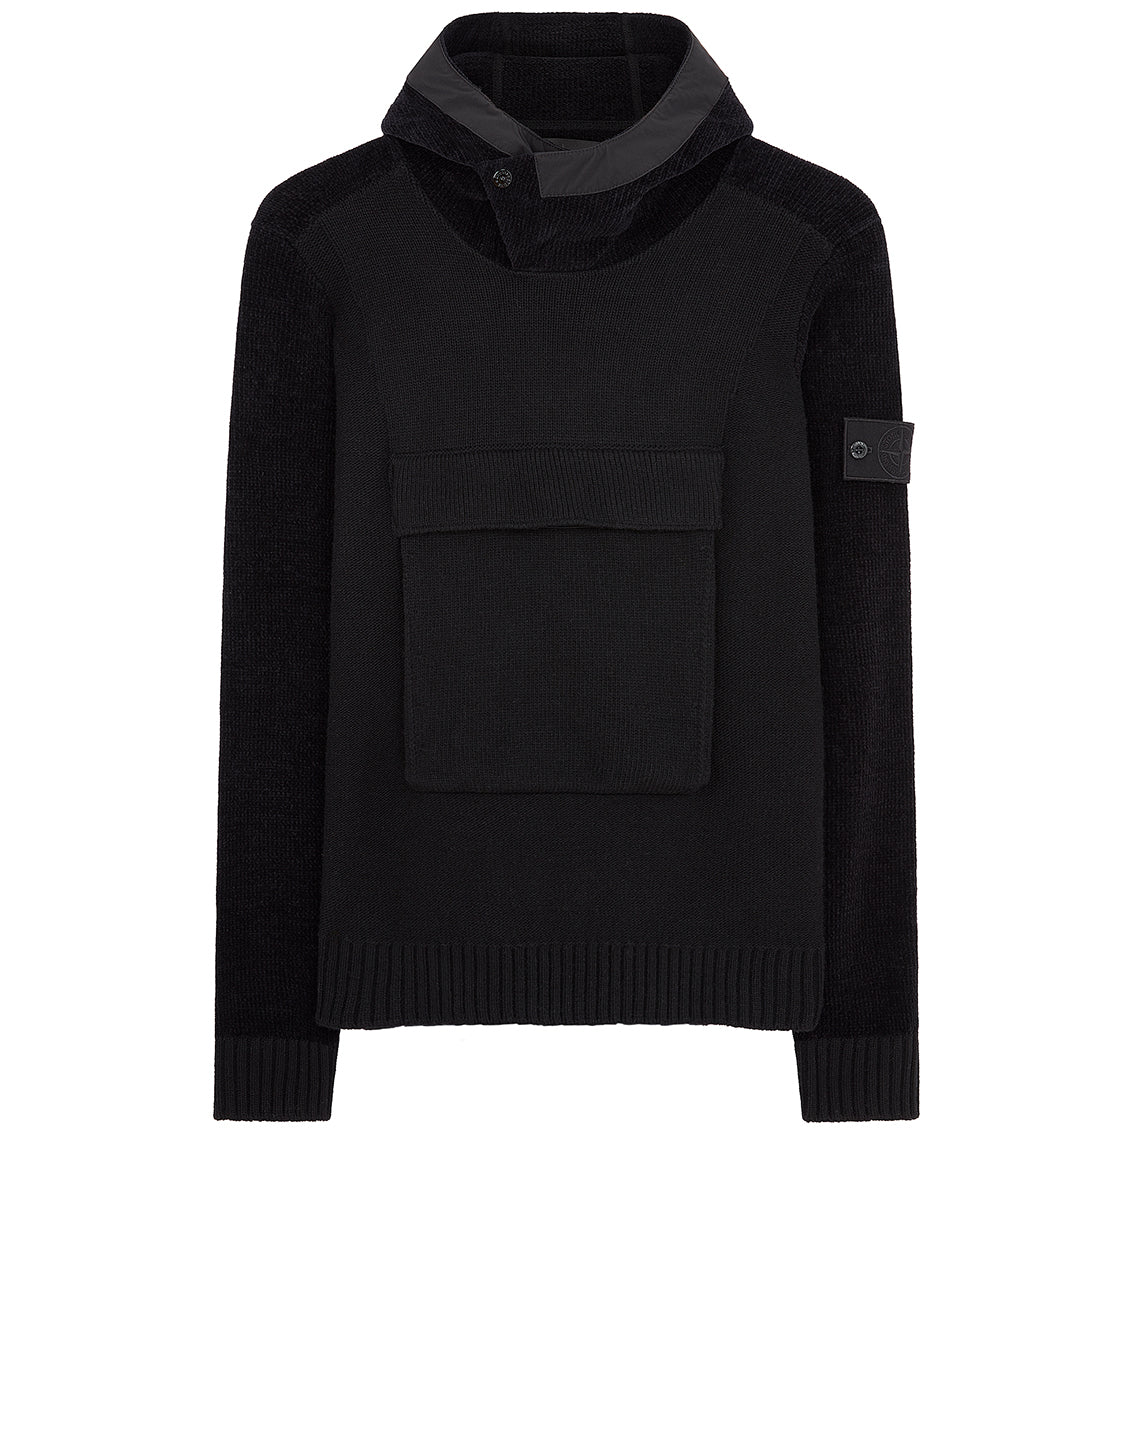 593FA Ghost Piece Knit in Black